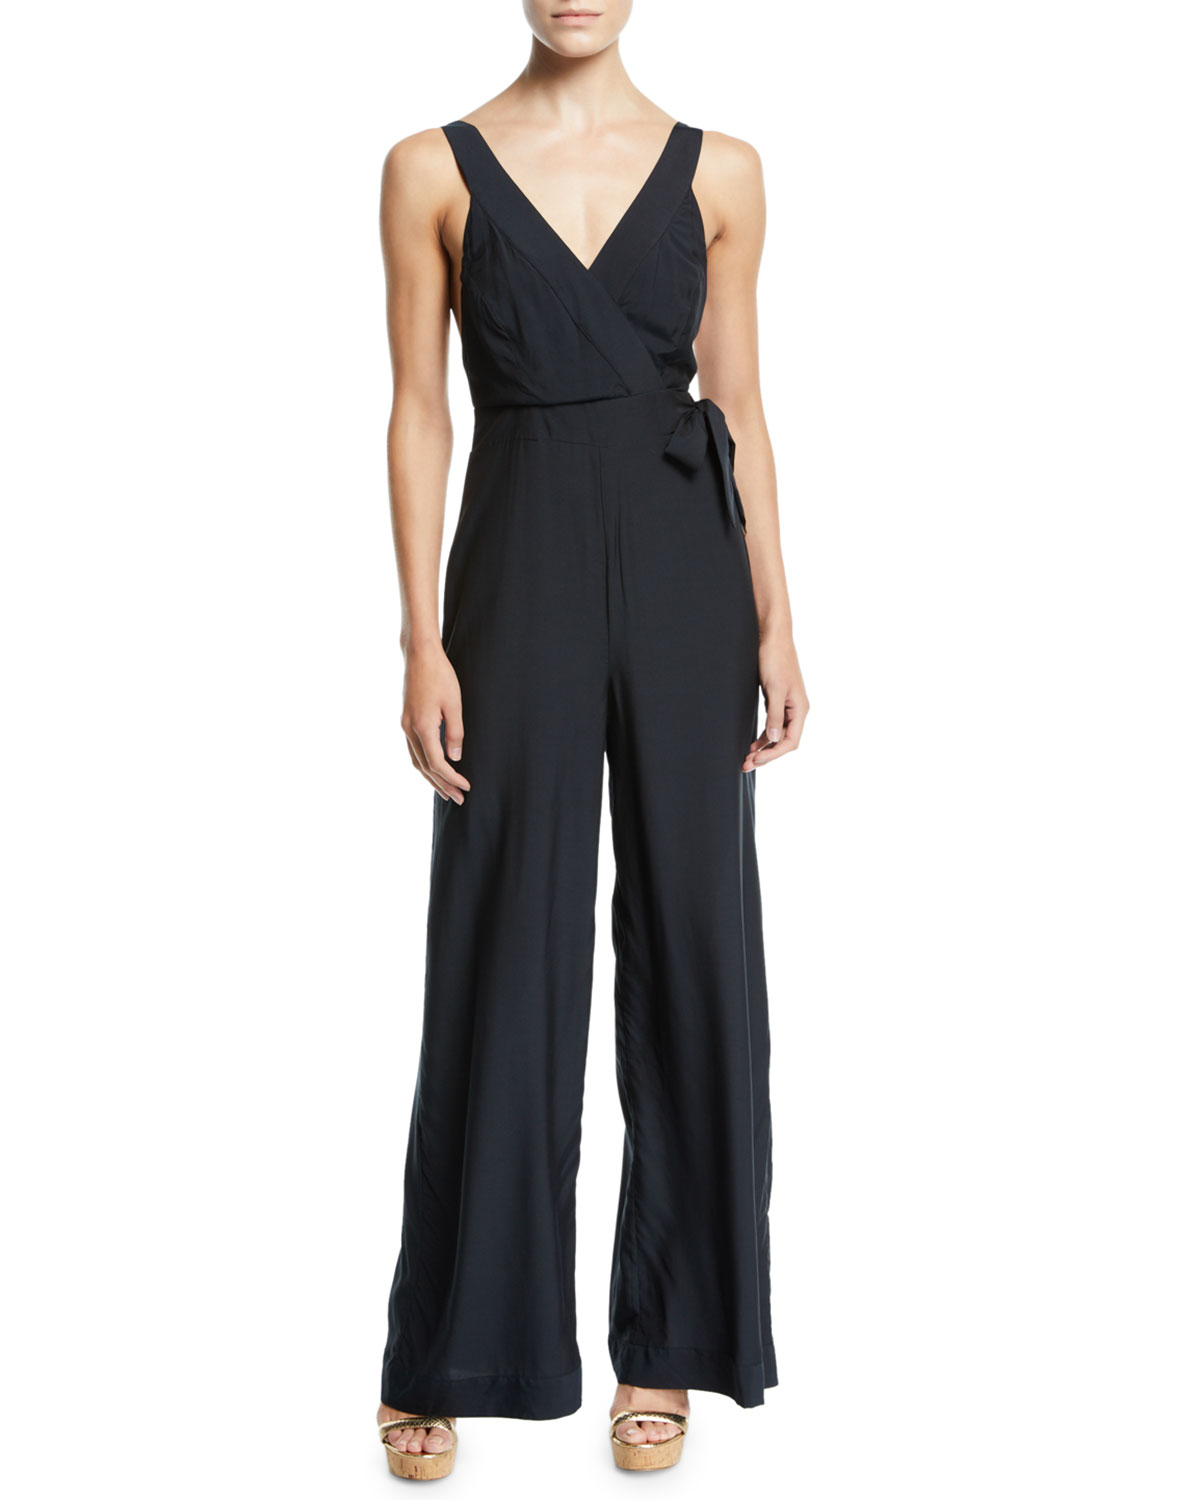 JETS BY JESSIKA ALLEN Jess Gomes Sleeveless Coverup Jumpsuit in Black